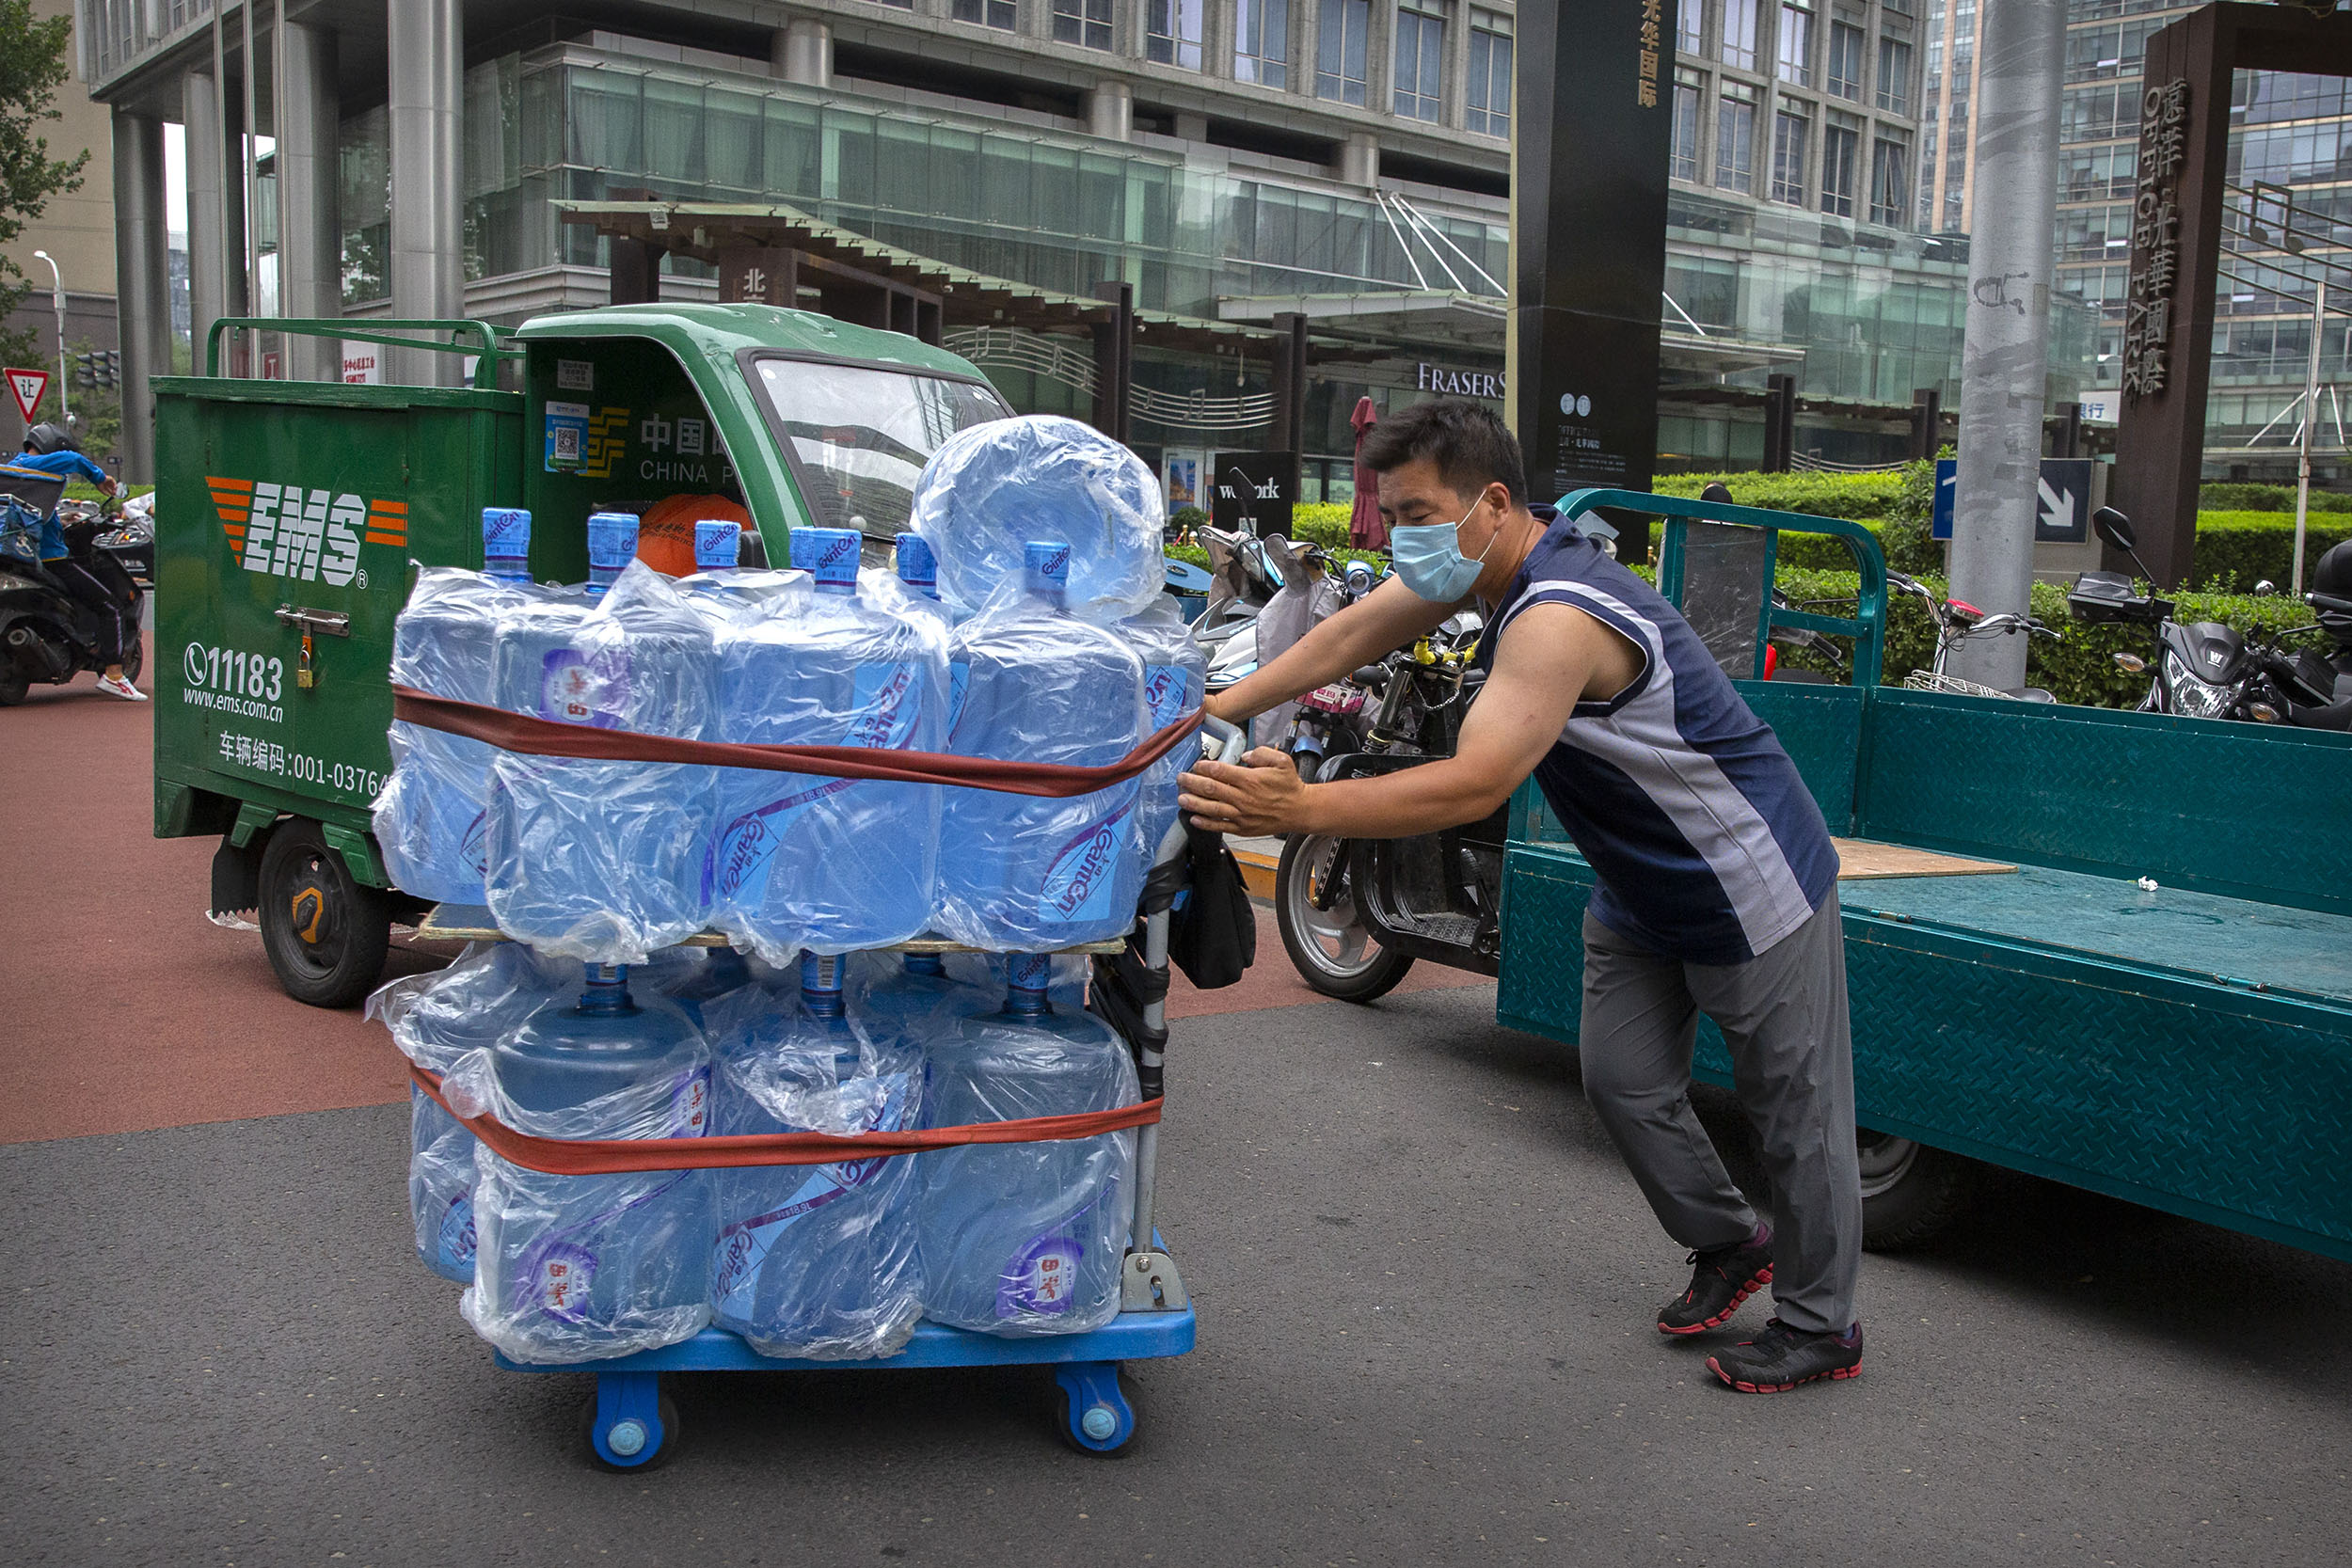 A worker pushes a cart loaded with bottles of drinking water in Beijing on July 17.